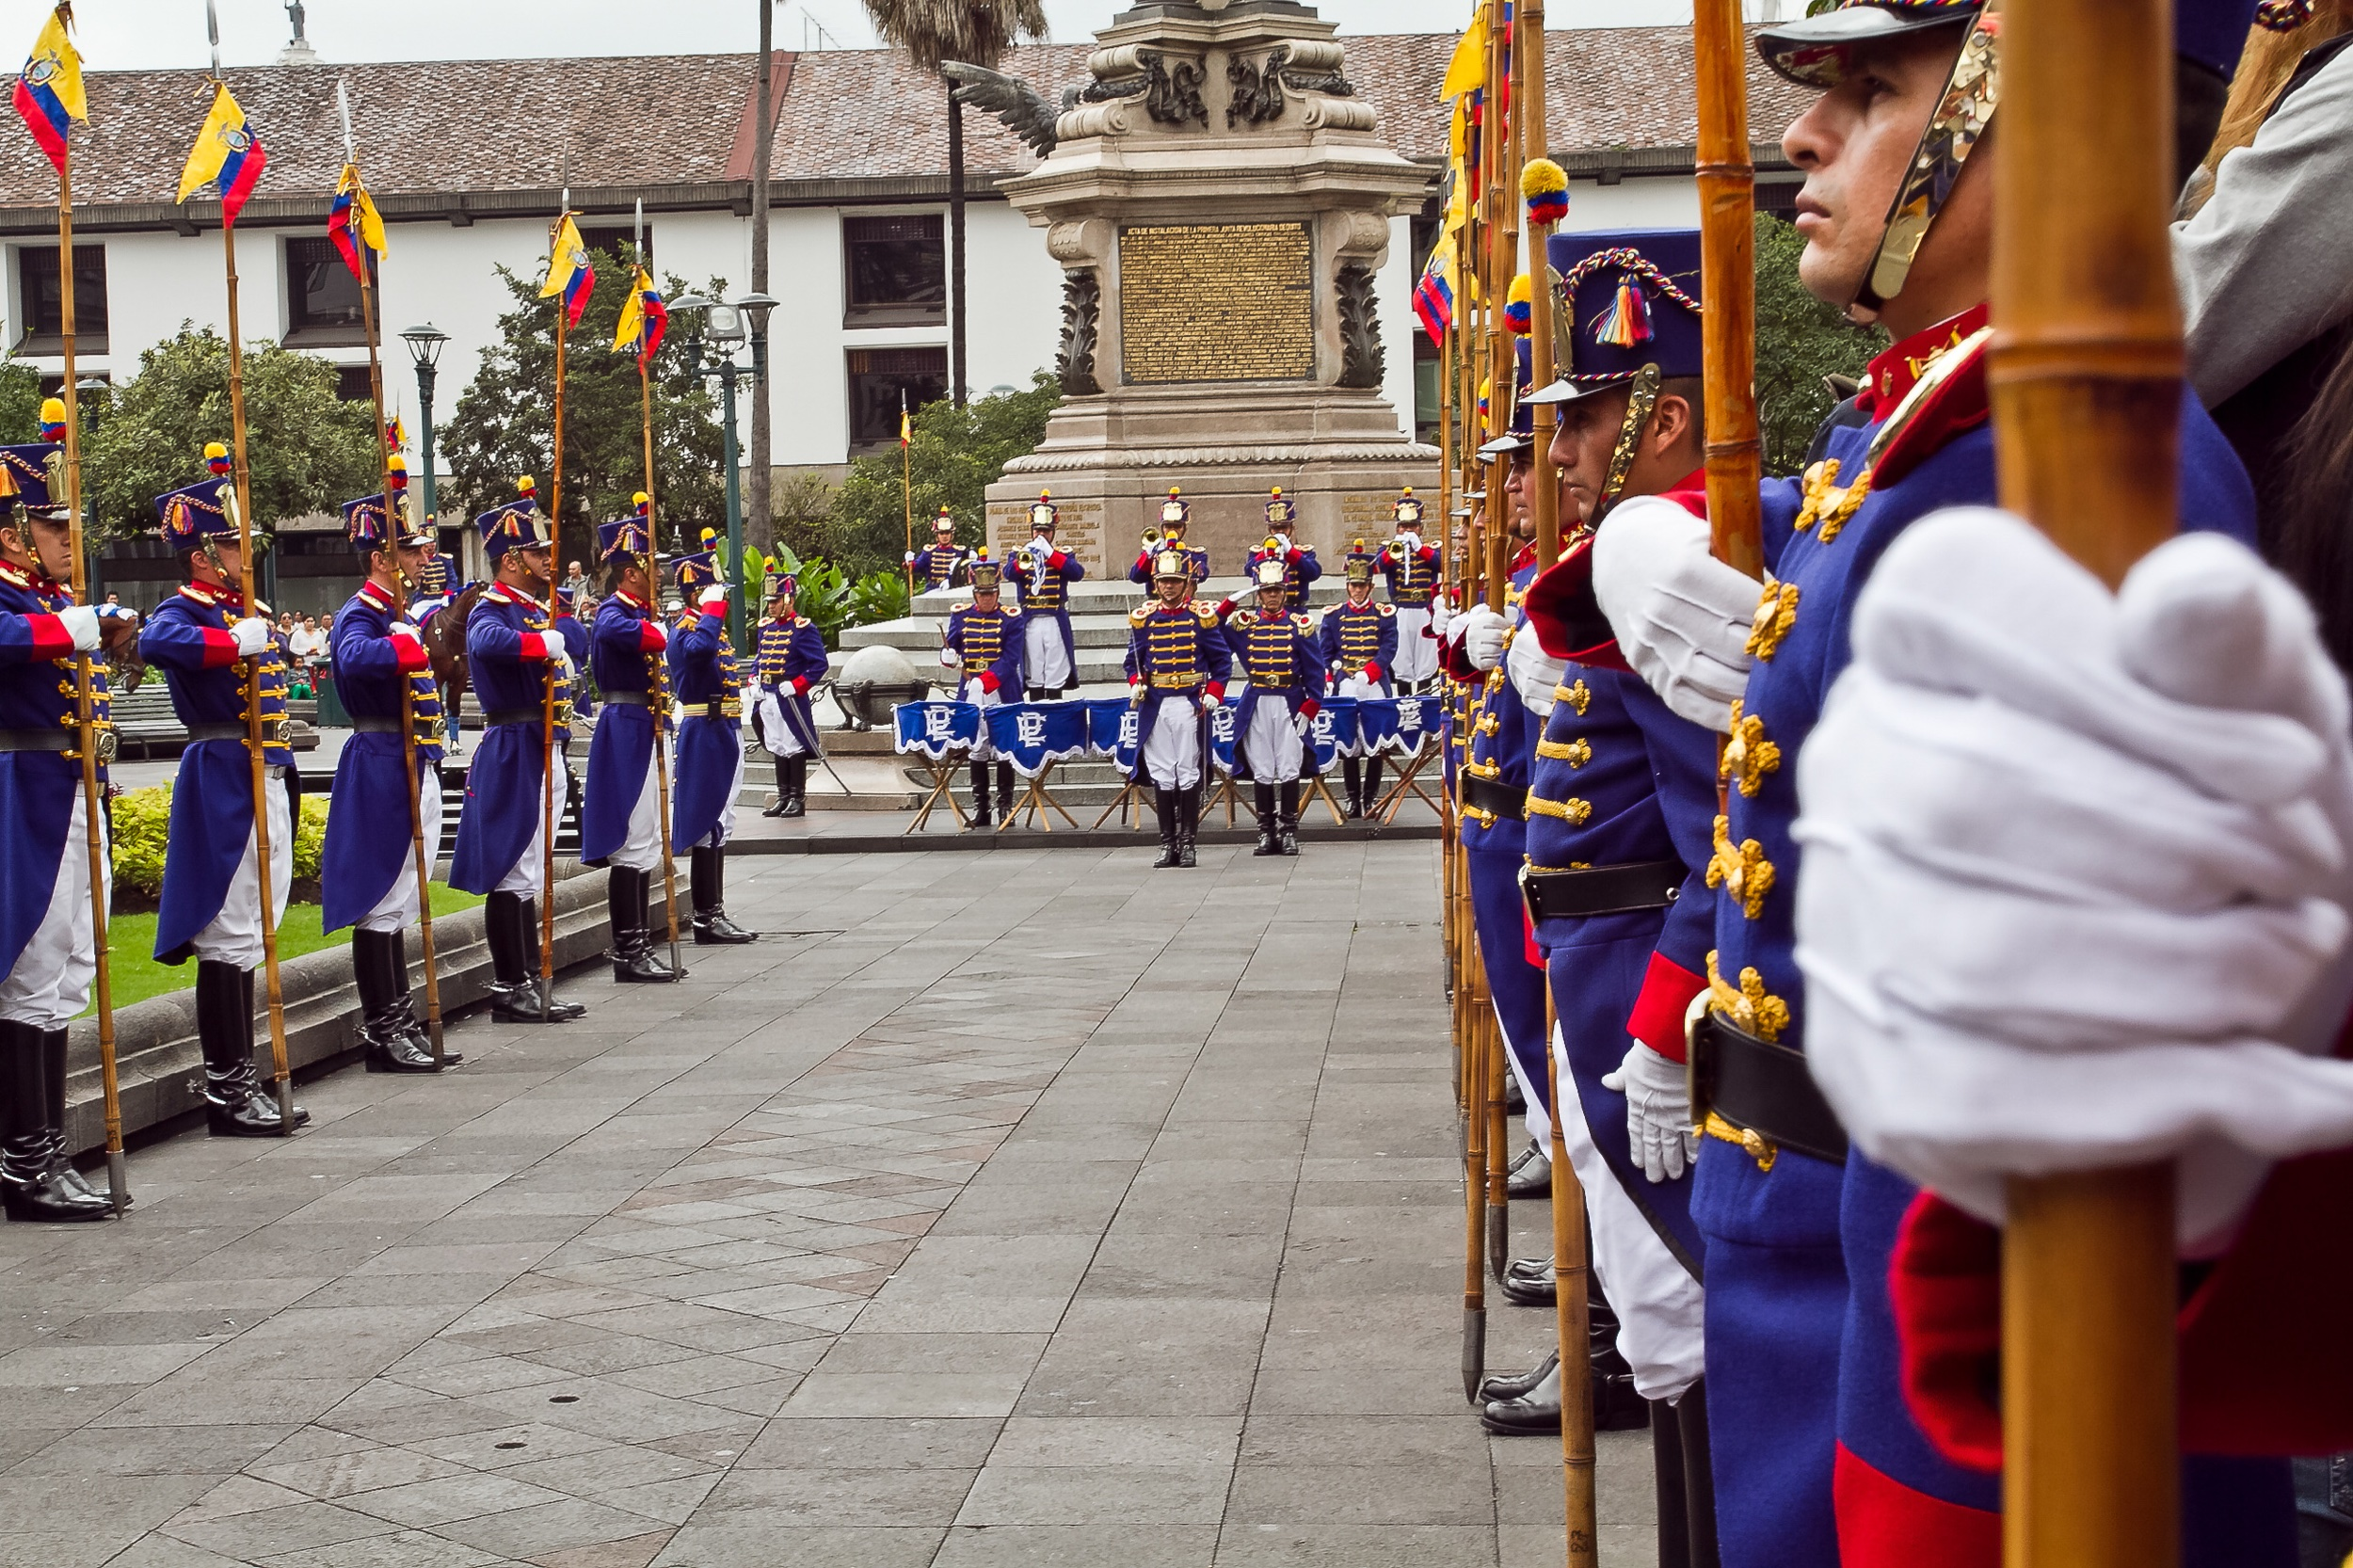 1) Plaza Grande and Changing of the Guard: